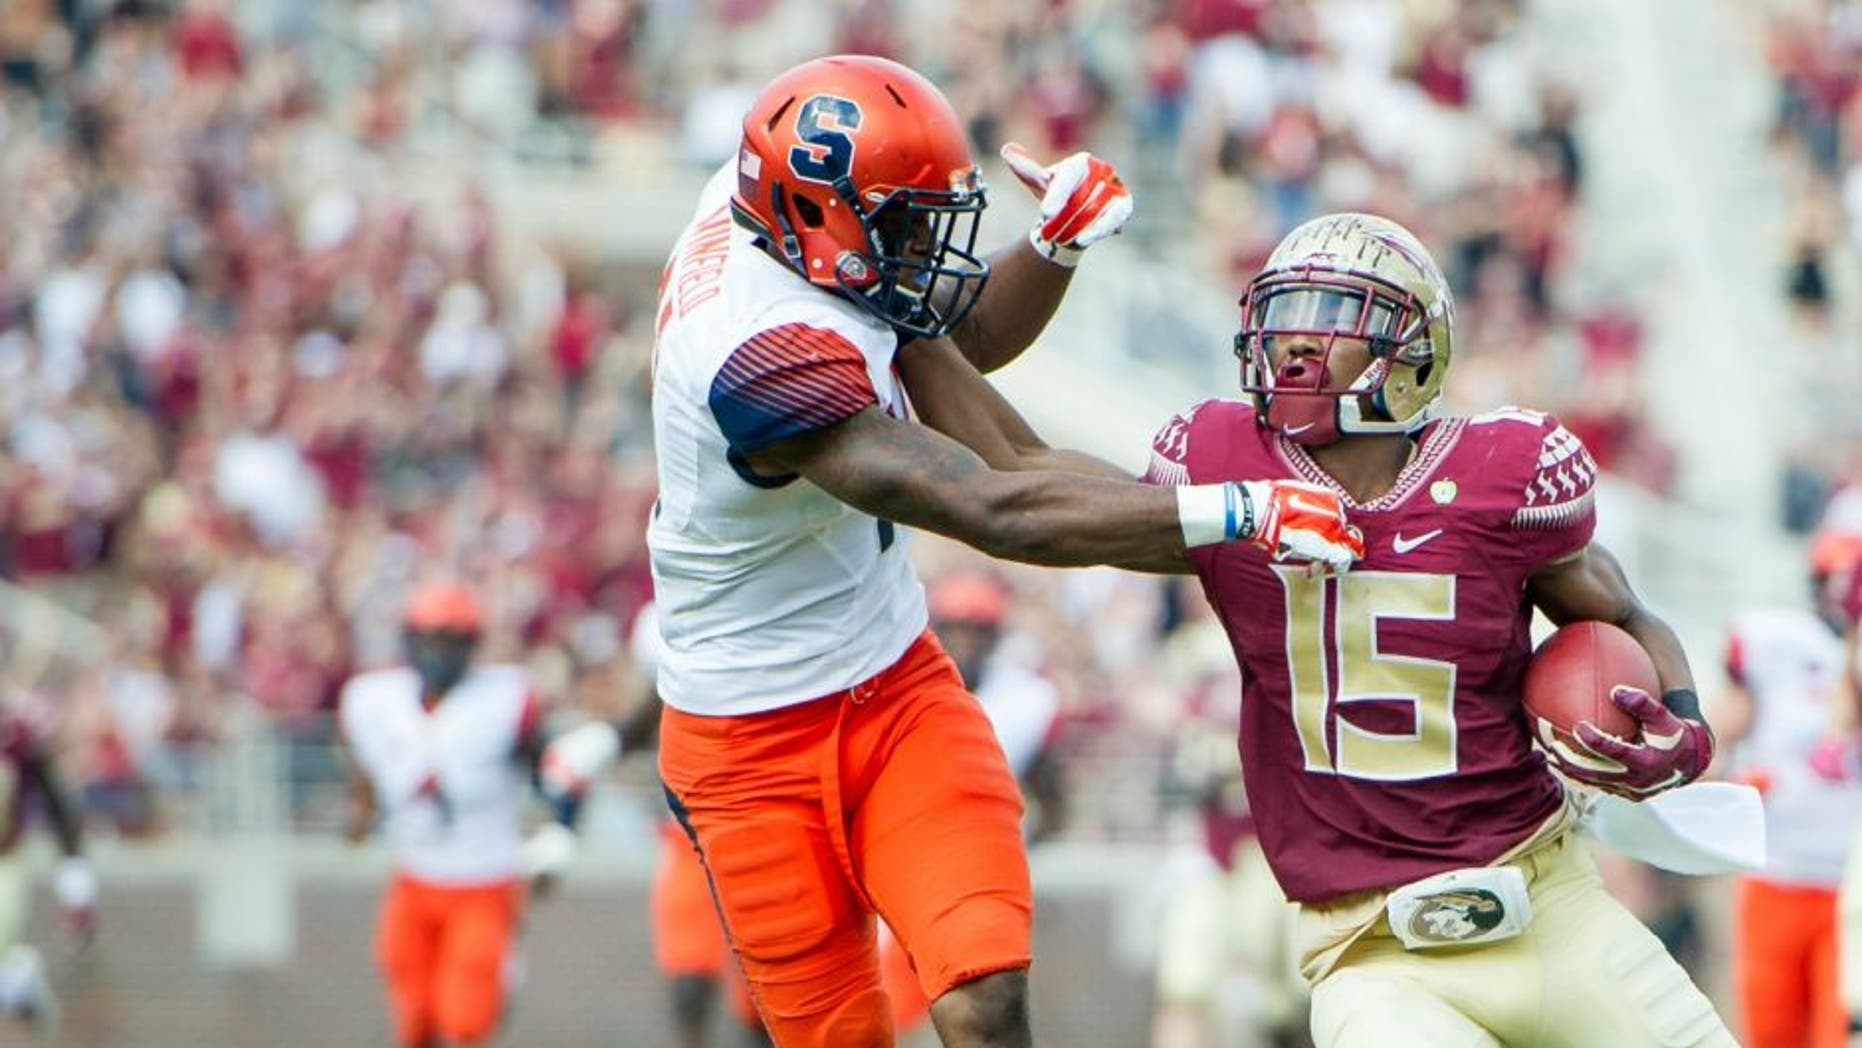 TALLAHASSEE, FL - OCTOBER 31: Wide receiver Travis Rudolph #15 of the Florida State Seminoles pushes cornerback Corey Winfield #11 of the Syracuse Orange while running the ball downfield on October 31, 2015 at Doak Campbell Stadium in Tallahassee, FL. (Photo by Michael Chang/Getty Images)